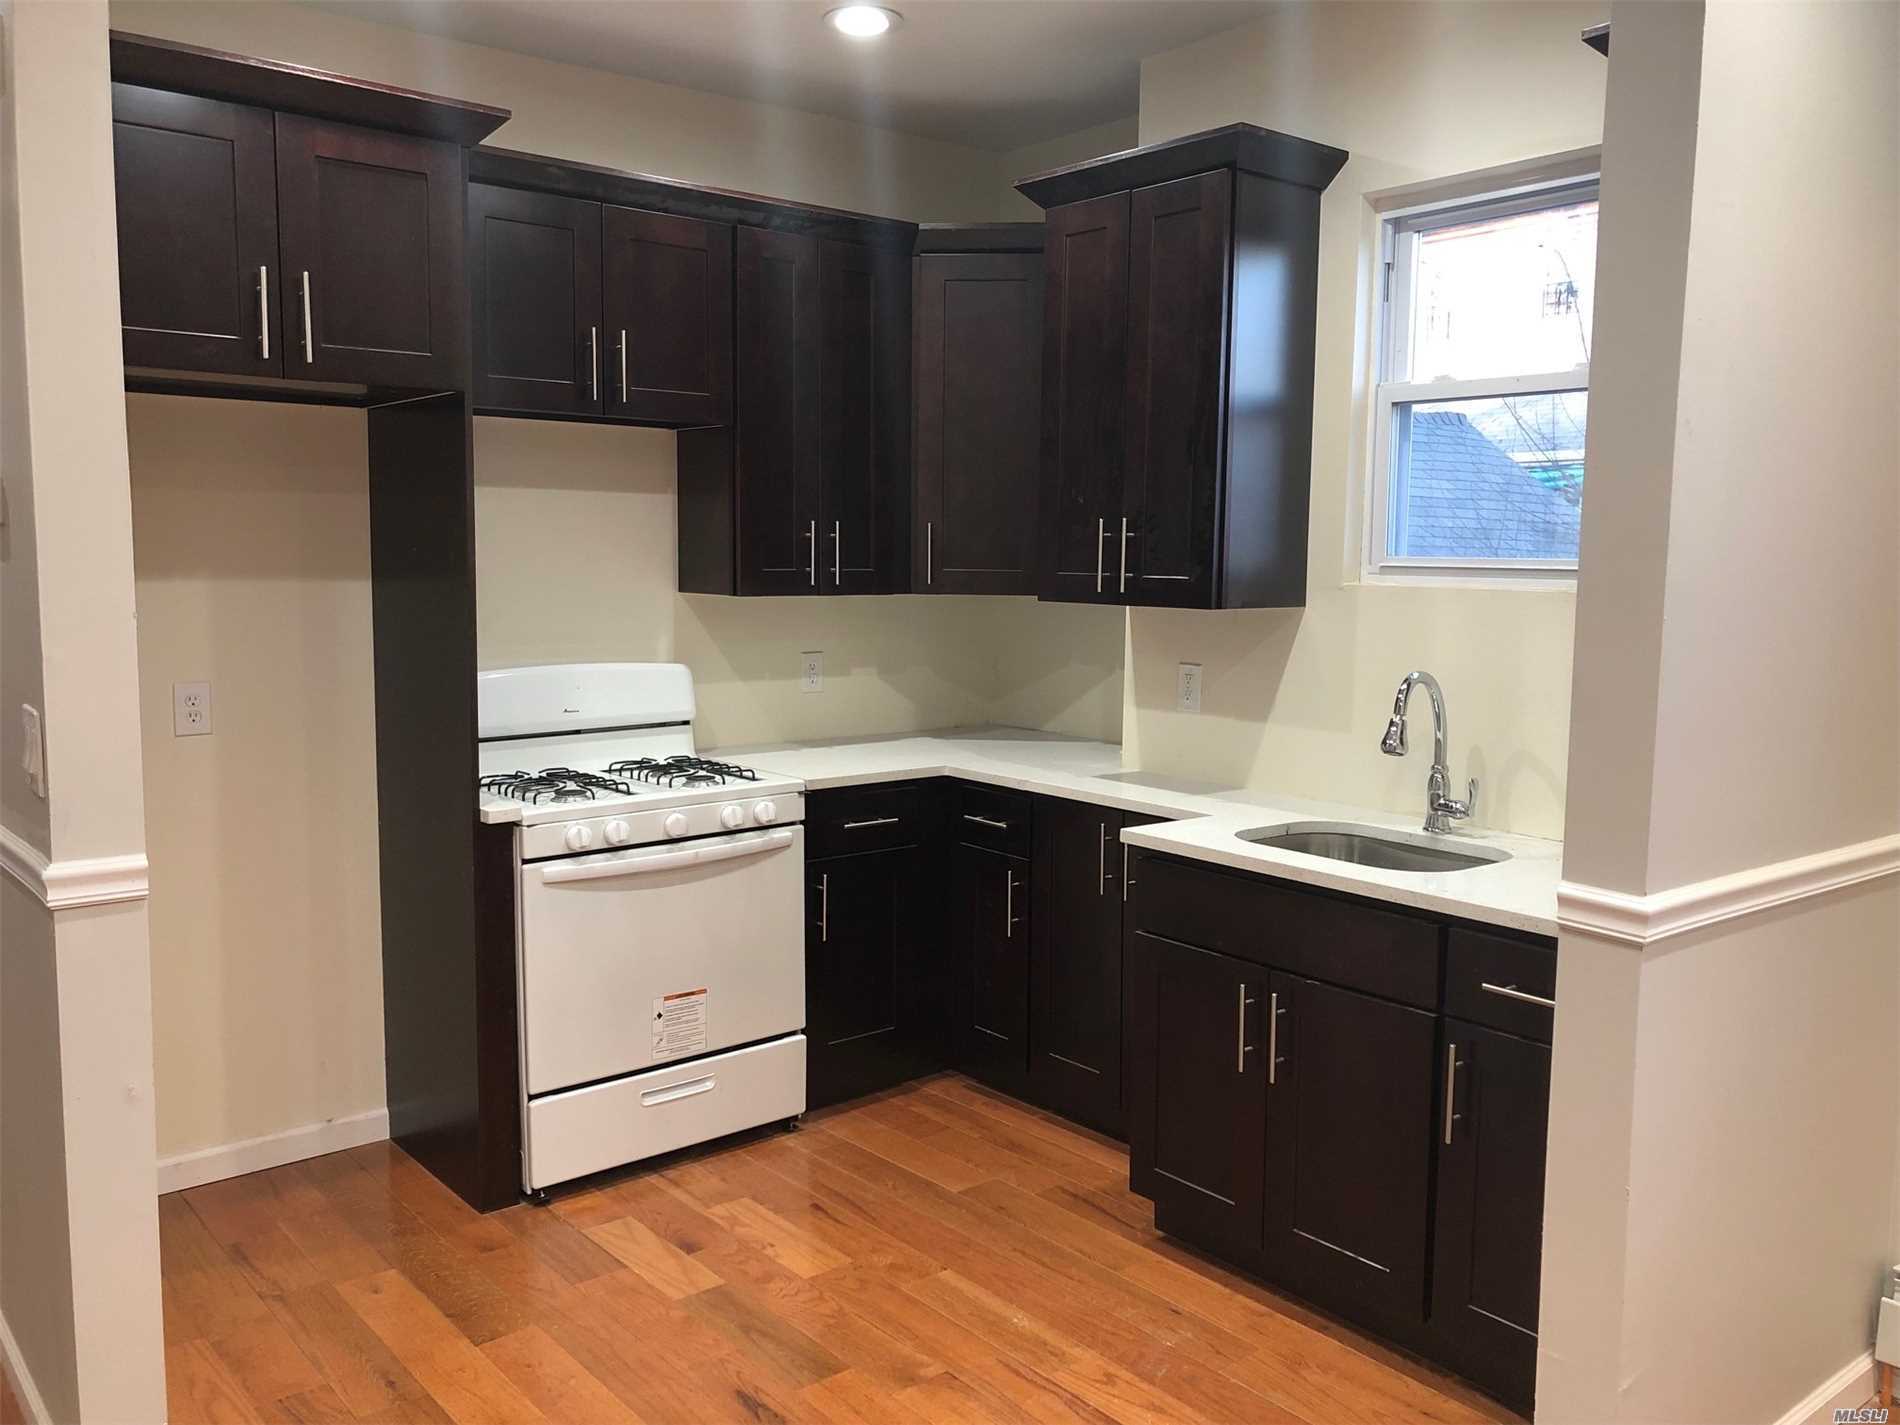 Beautifully renovated 3 bedrooms and 1 bathroom apartment. Brand new hardwood floors throughout. Turn key ready to make it your home.